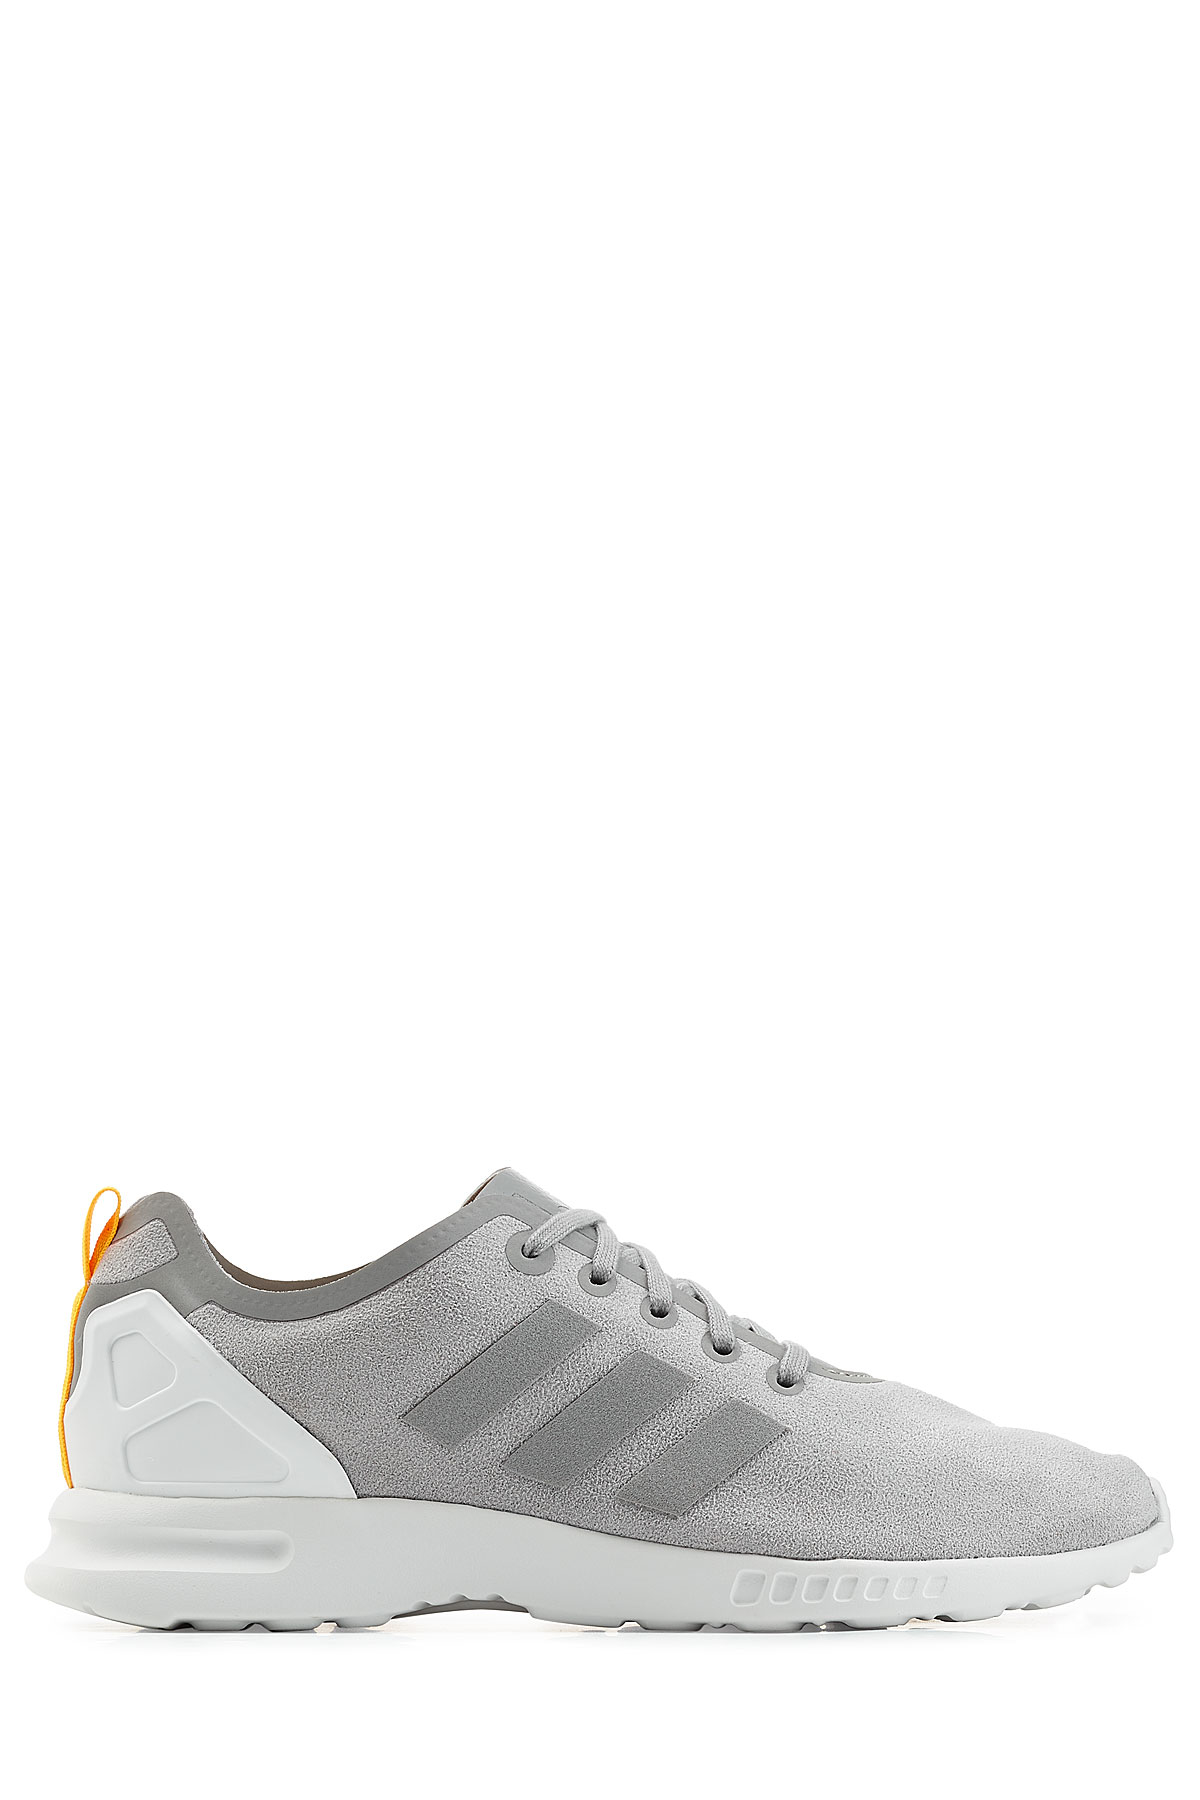 adidas ZX Flux Smooth Slip On W shoes pink Stylefile